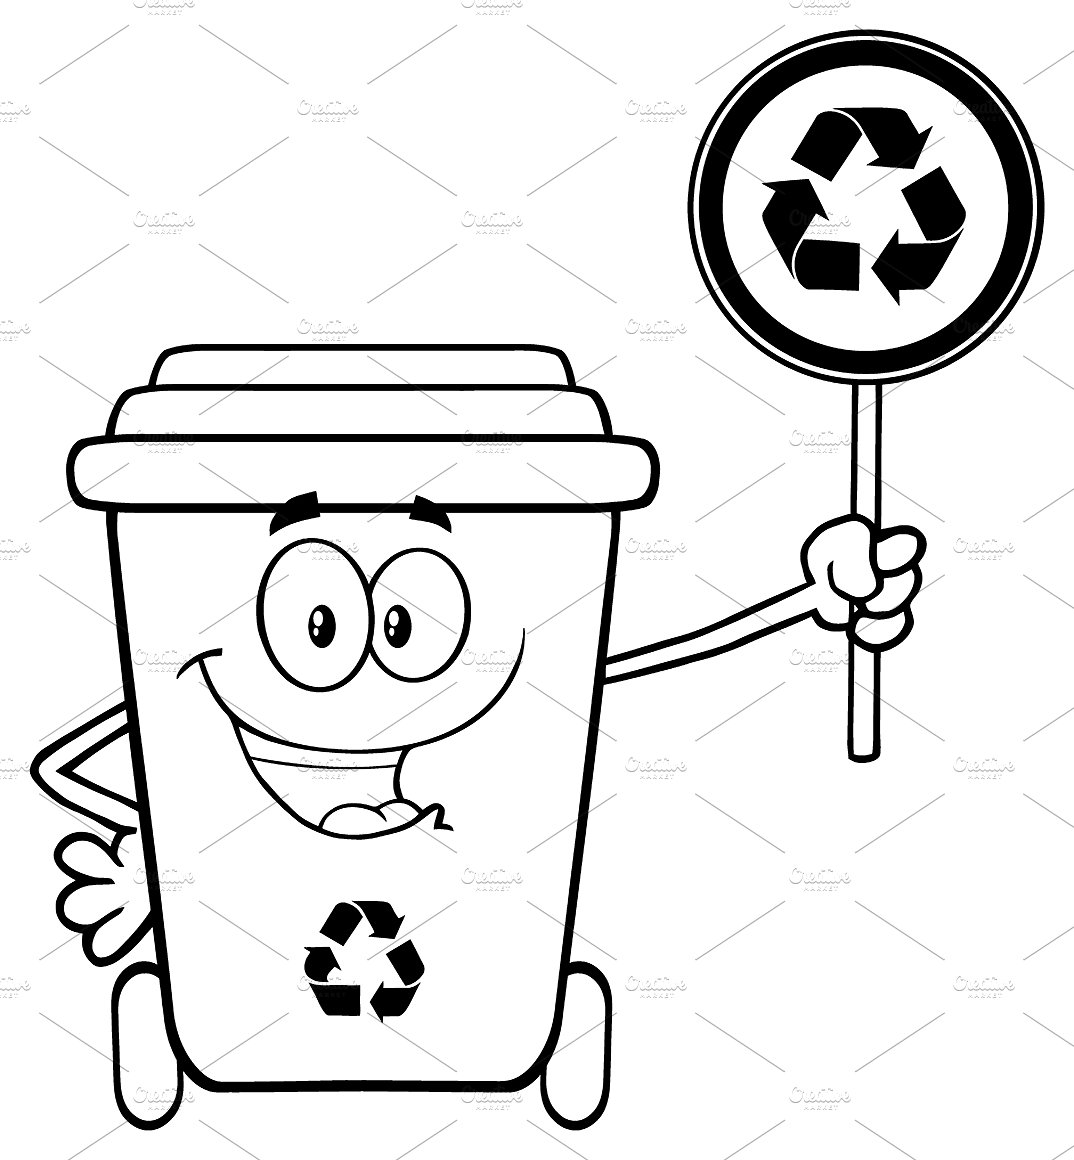 Black And White Cute Recycle Bin ~ Illustrations on Creative Market.